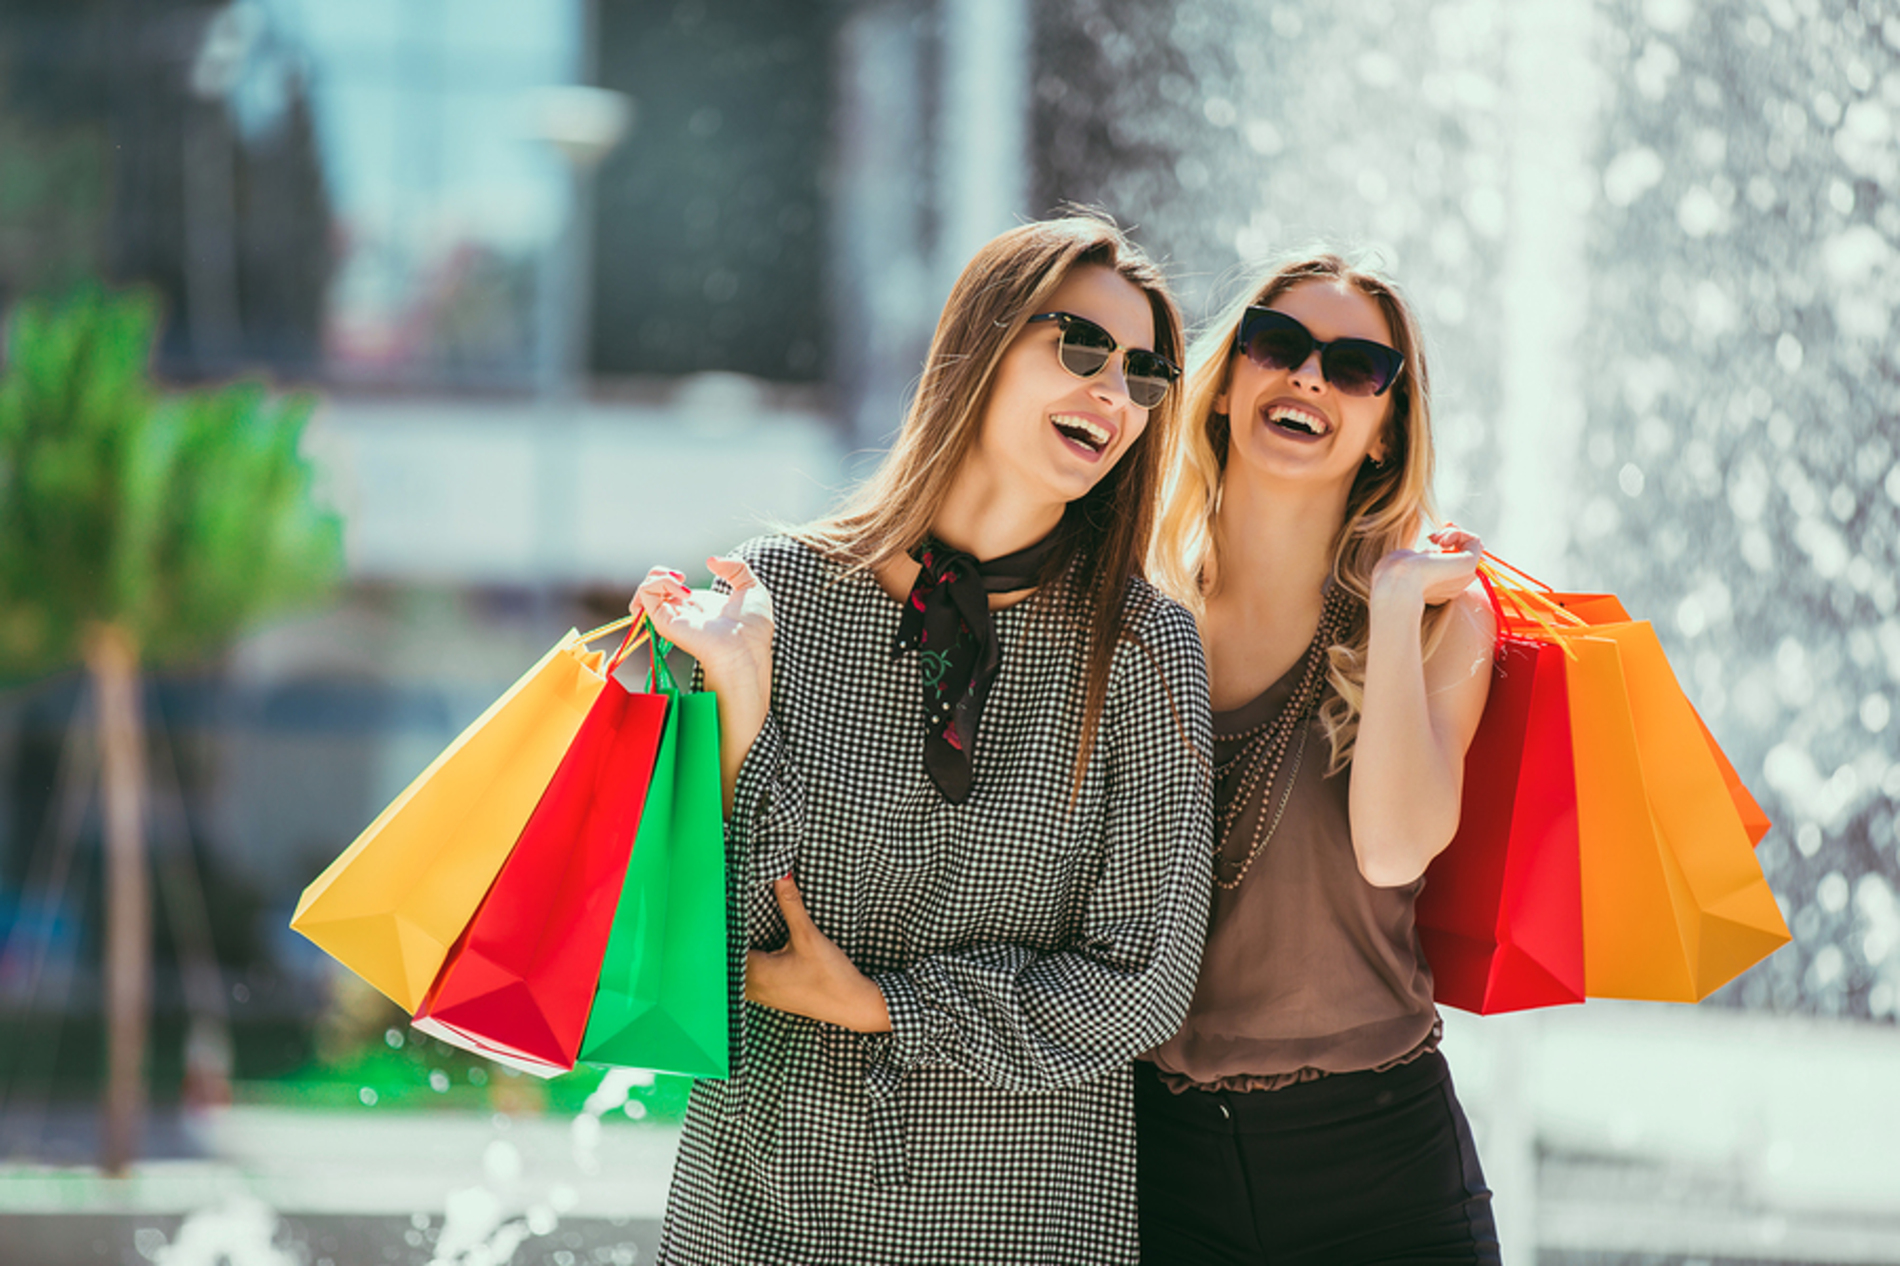 Two women smiling with shopping bags.